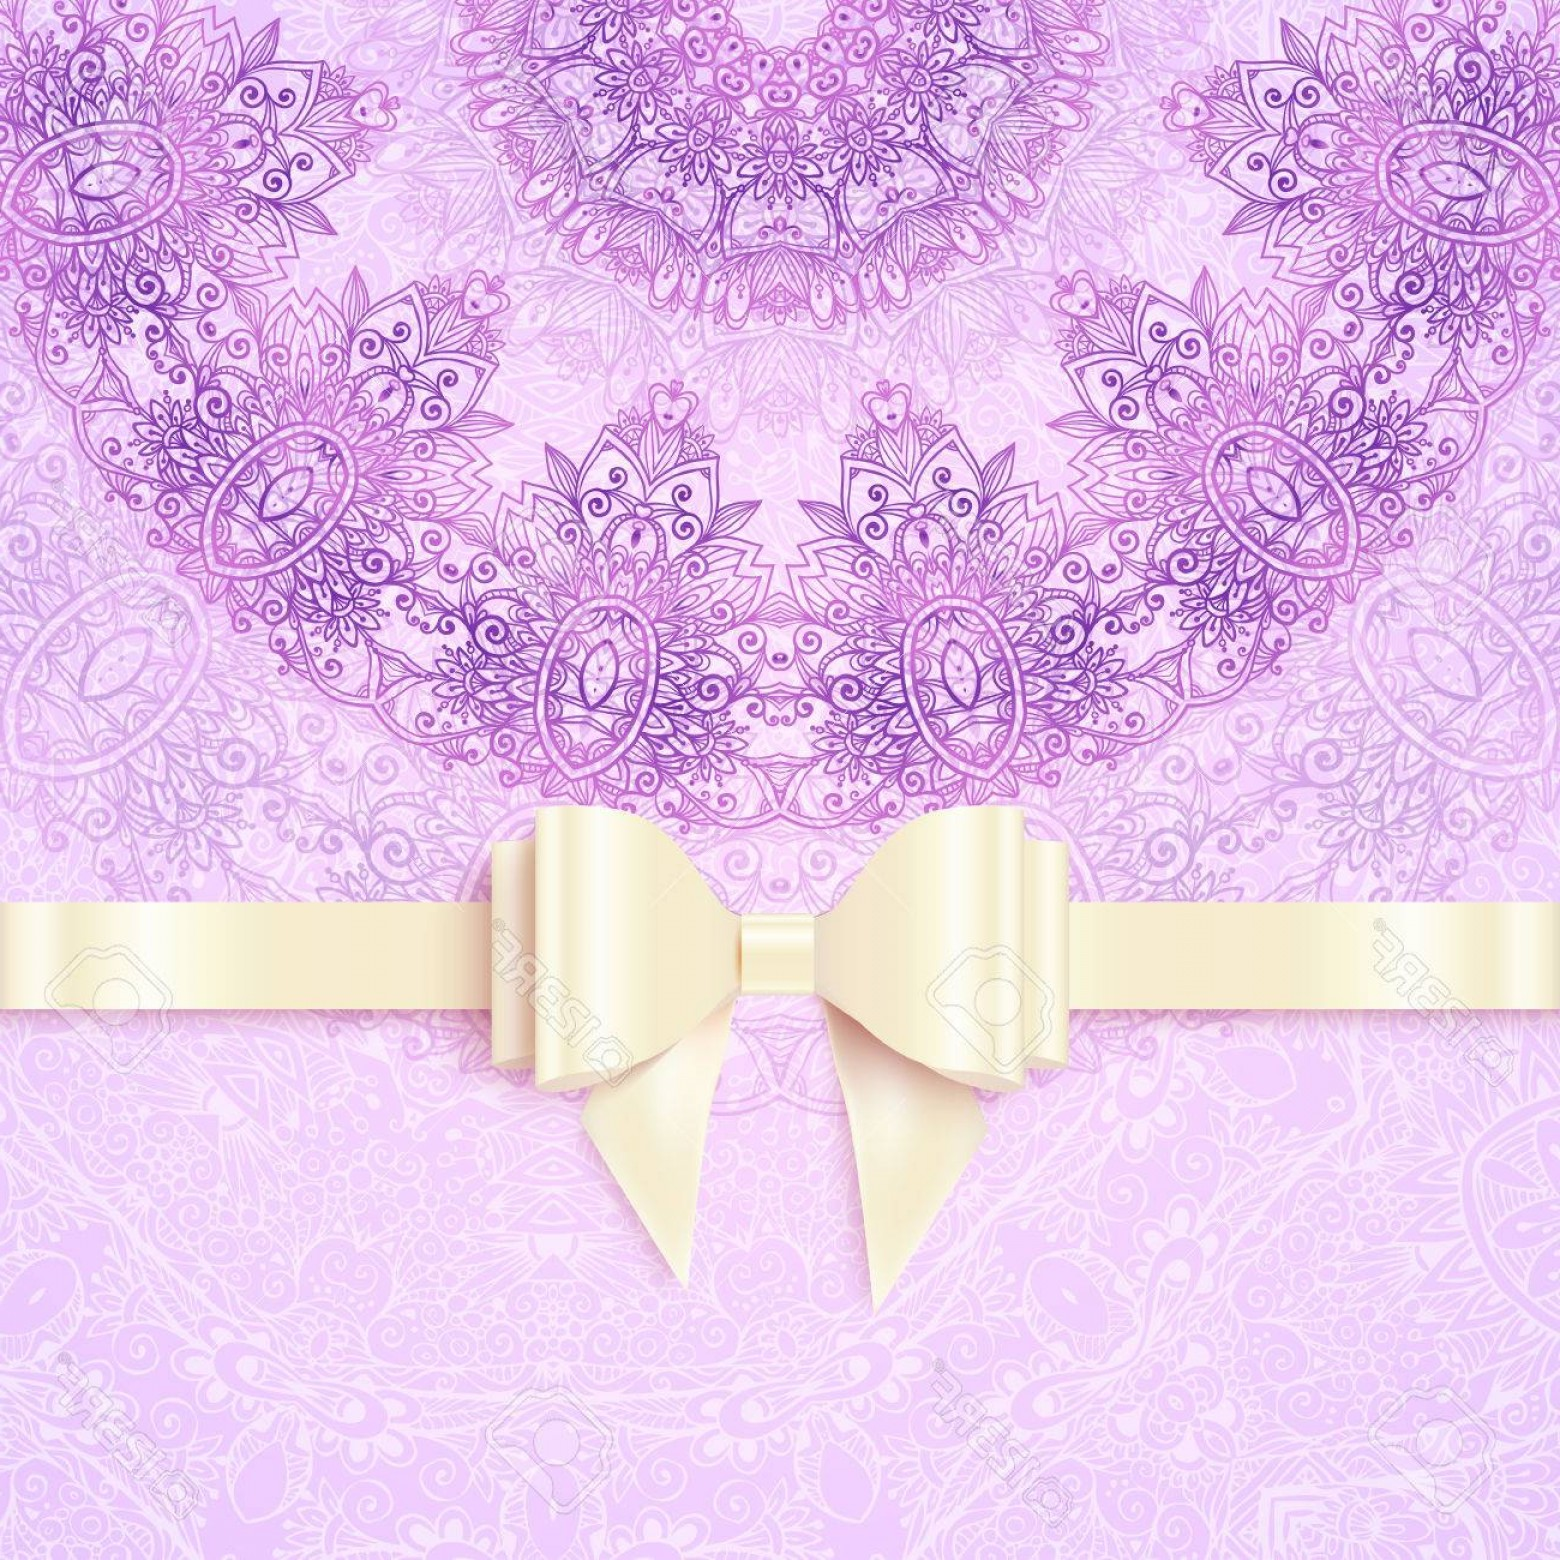 Lilac Wedding Vectors: Photostock Vector Purple Vintage Lacy Wedding Card Template